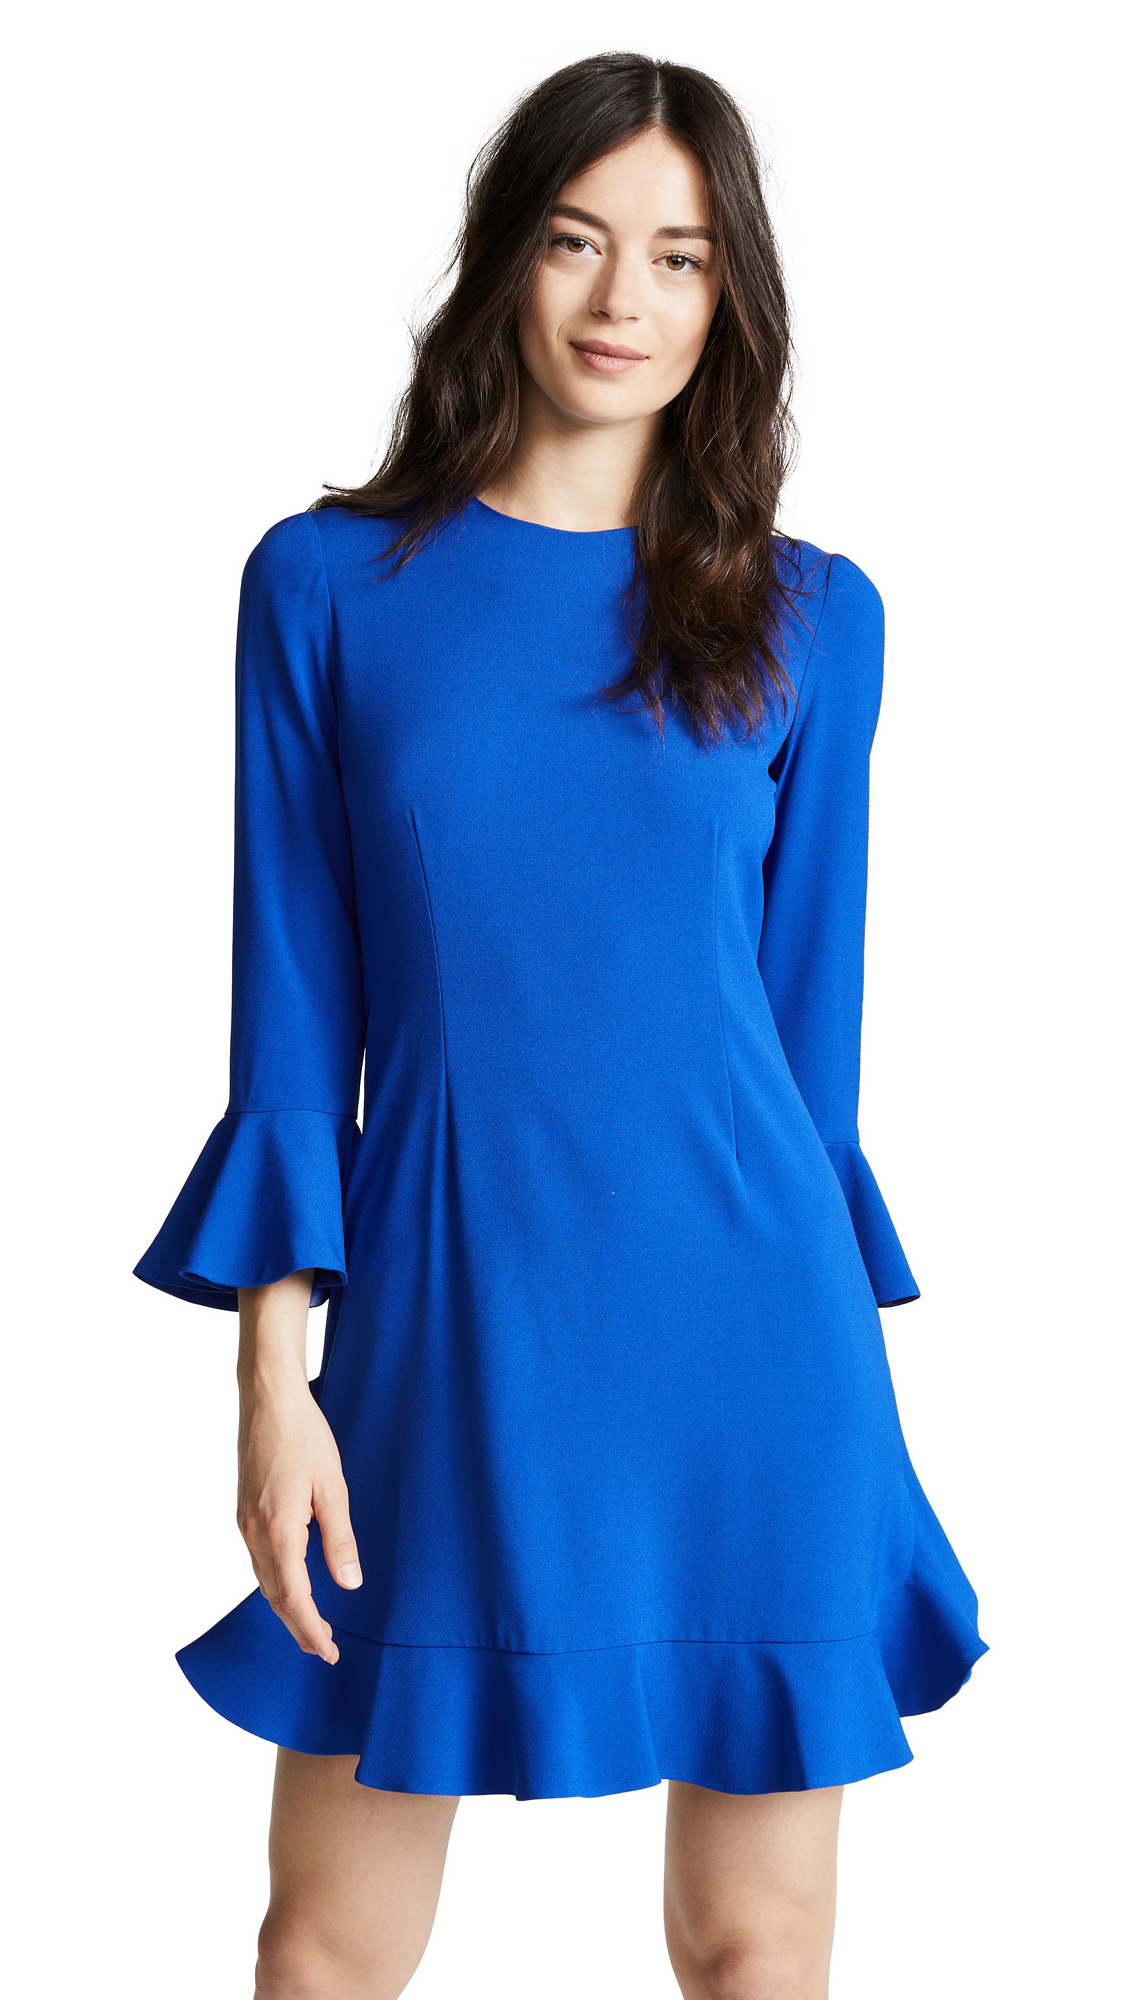 Jill Jill Stuart Crew Neck Flare Dress In Royal Blue